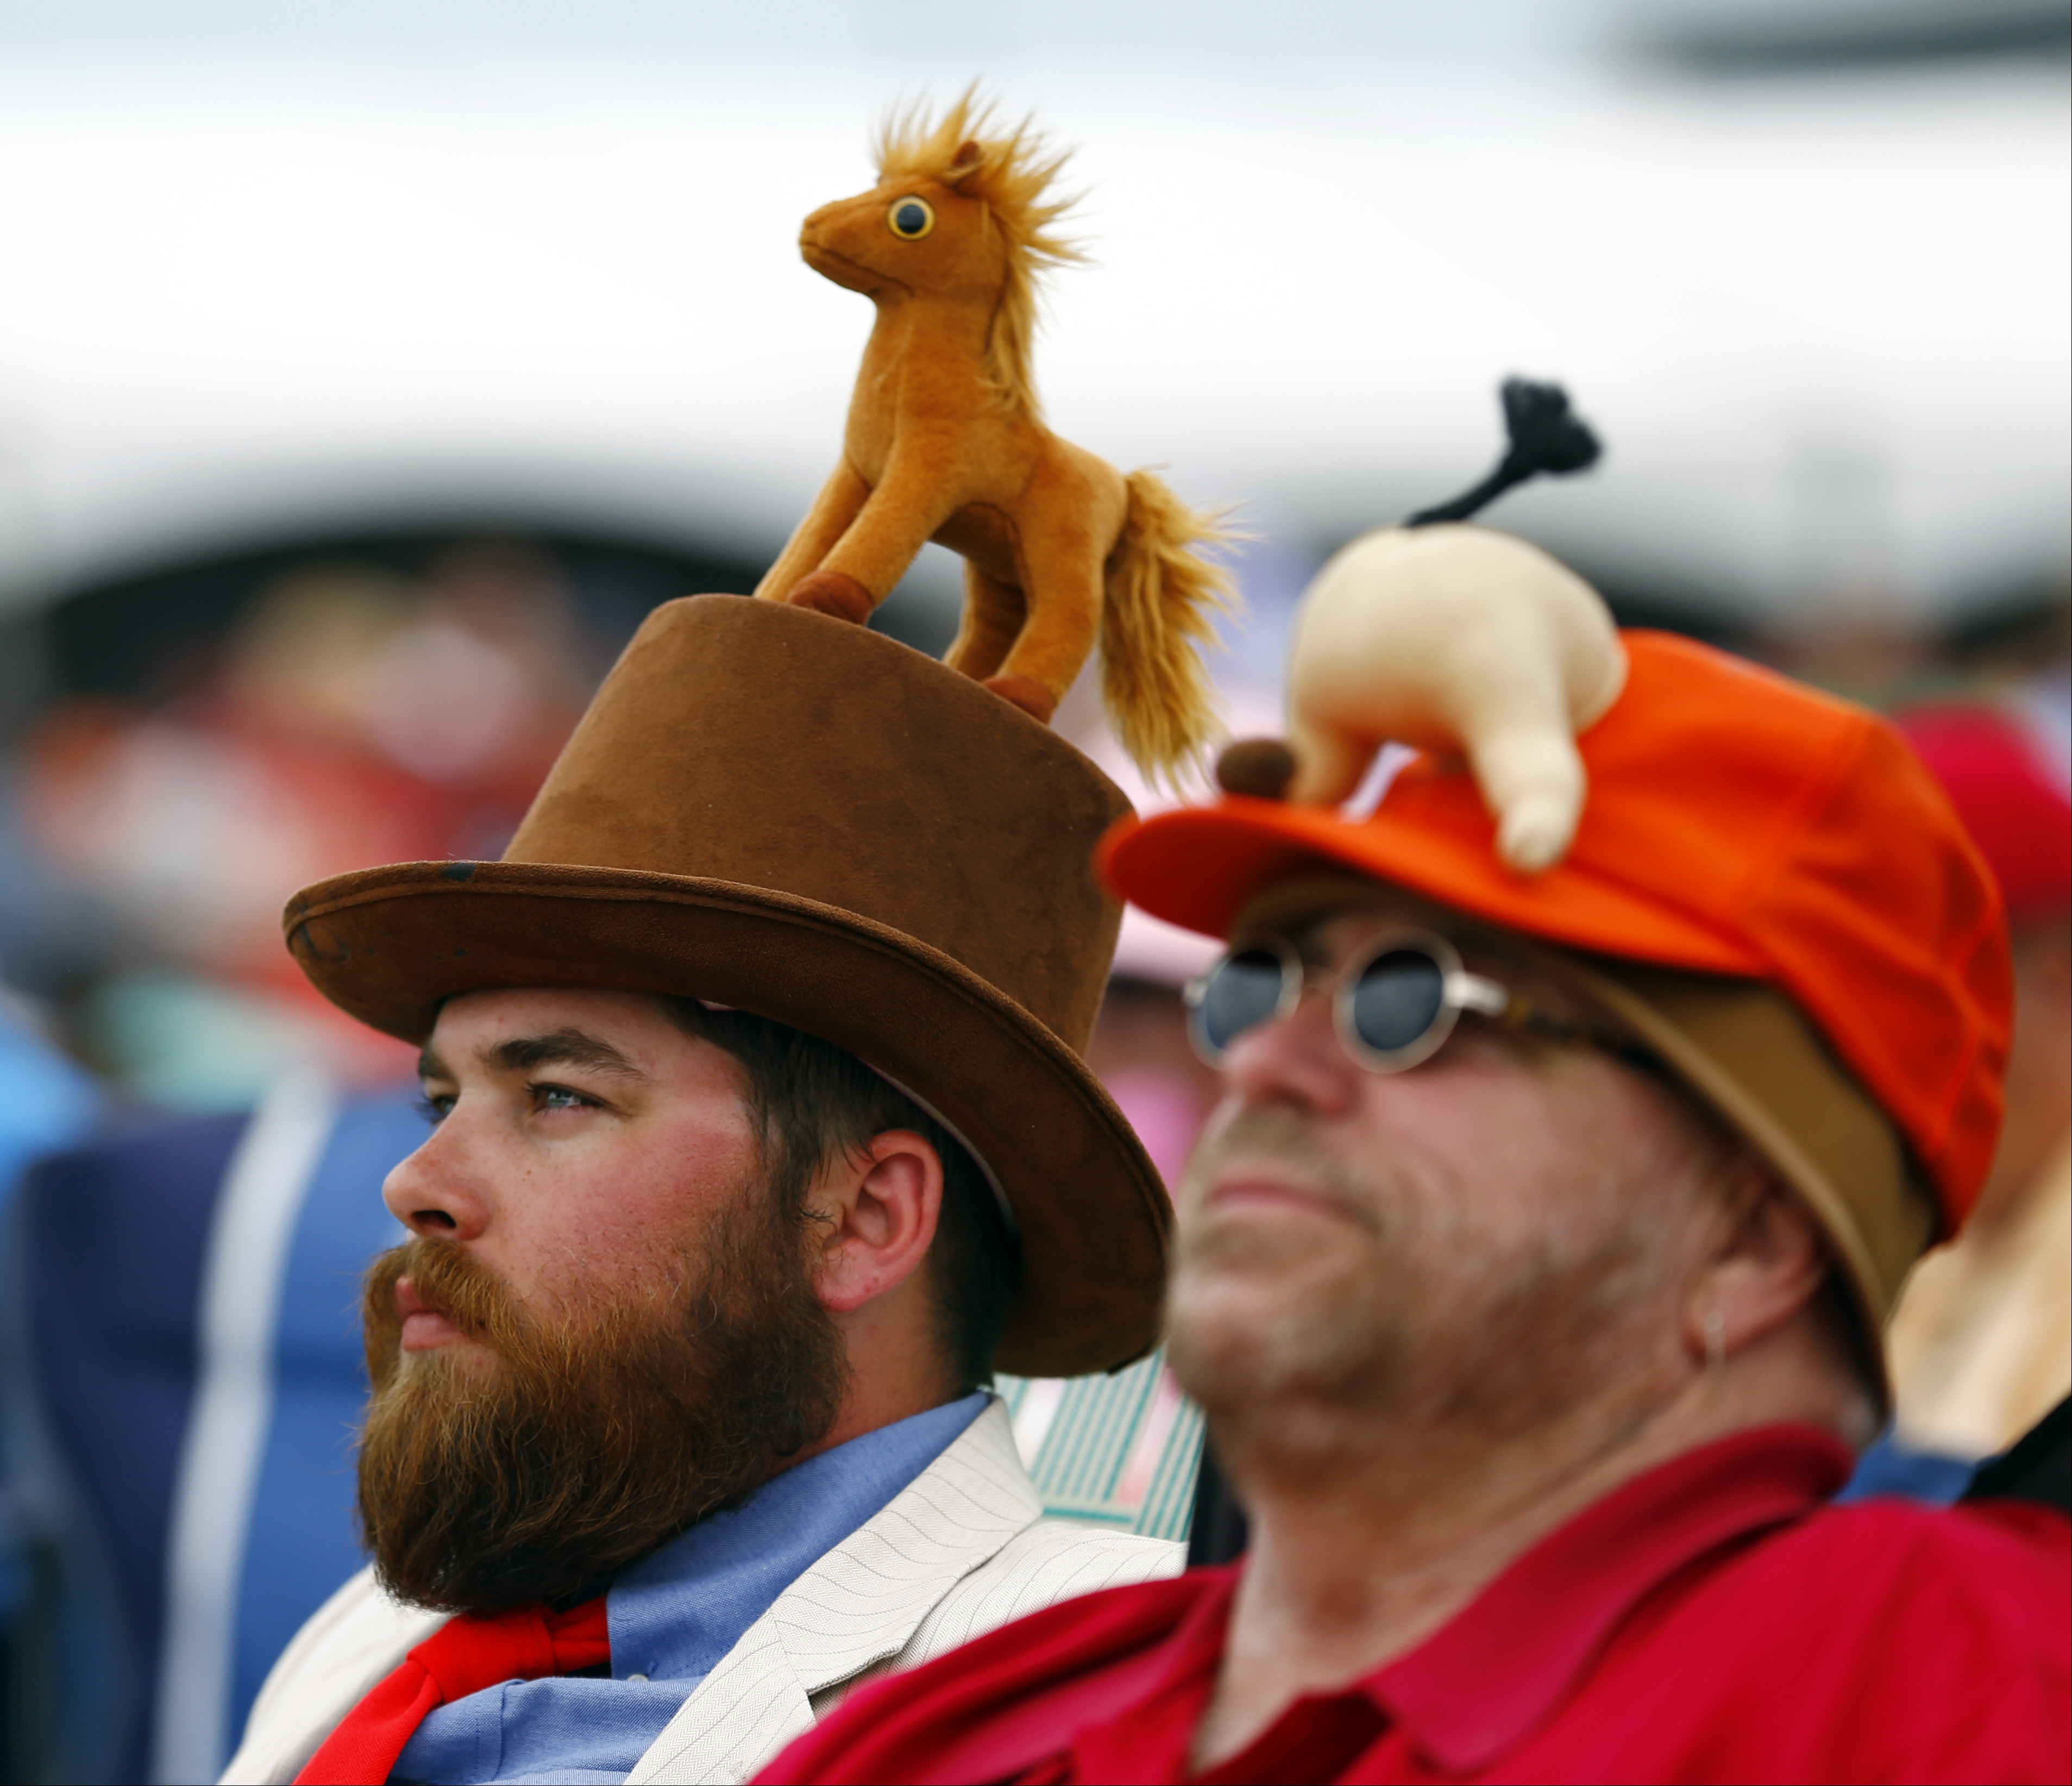 Fans wait for the start of the 142nd running of the Kentucky Derby horse race at Churchill Downs Saturday, May 7, 2016, in Louisville, Ky. (AP Photo/Julio Cortez)